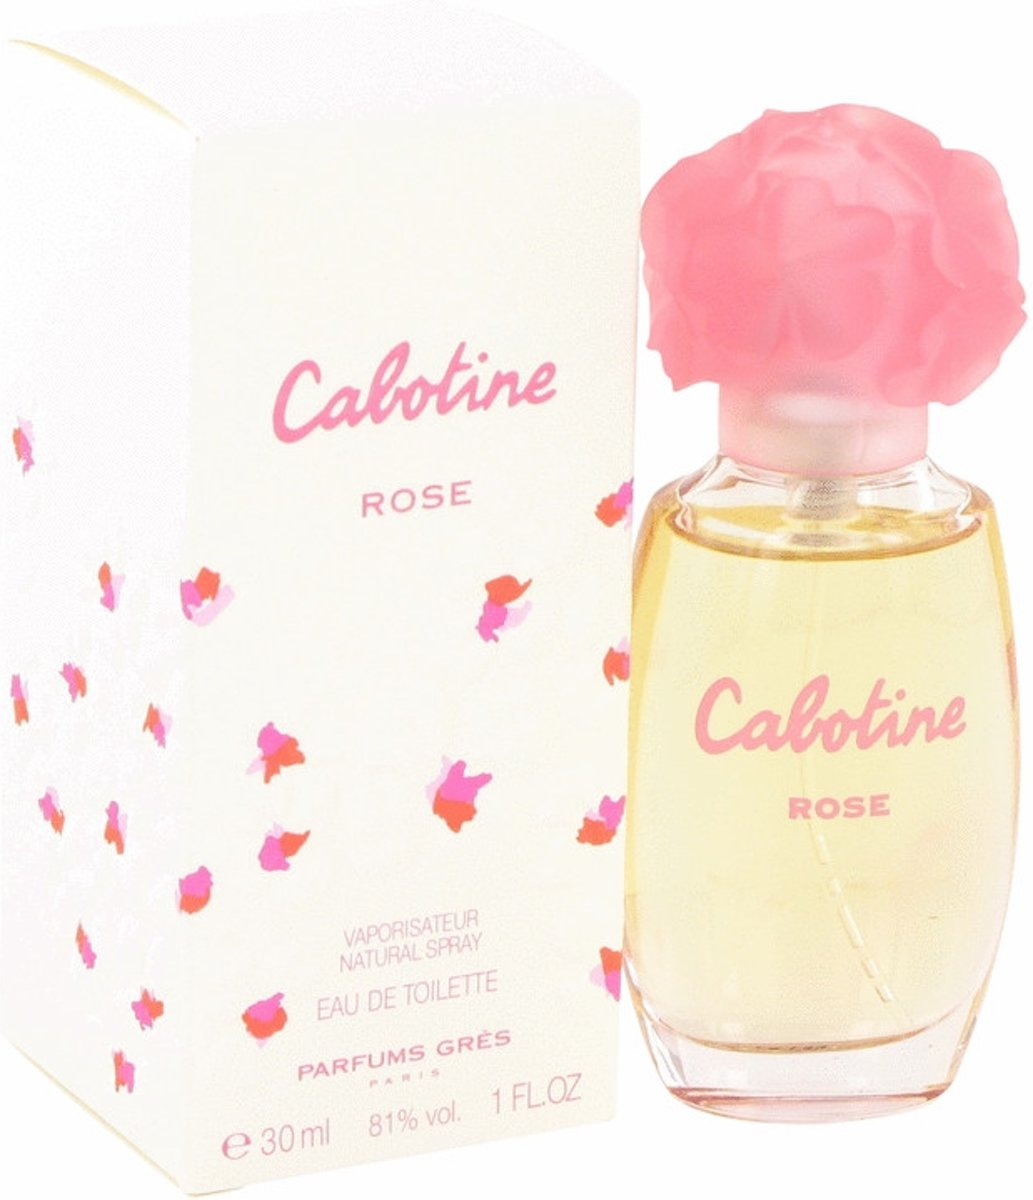 Parfums Gres Cabotine Rose - Eau de toilette spray - 30 ml